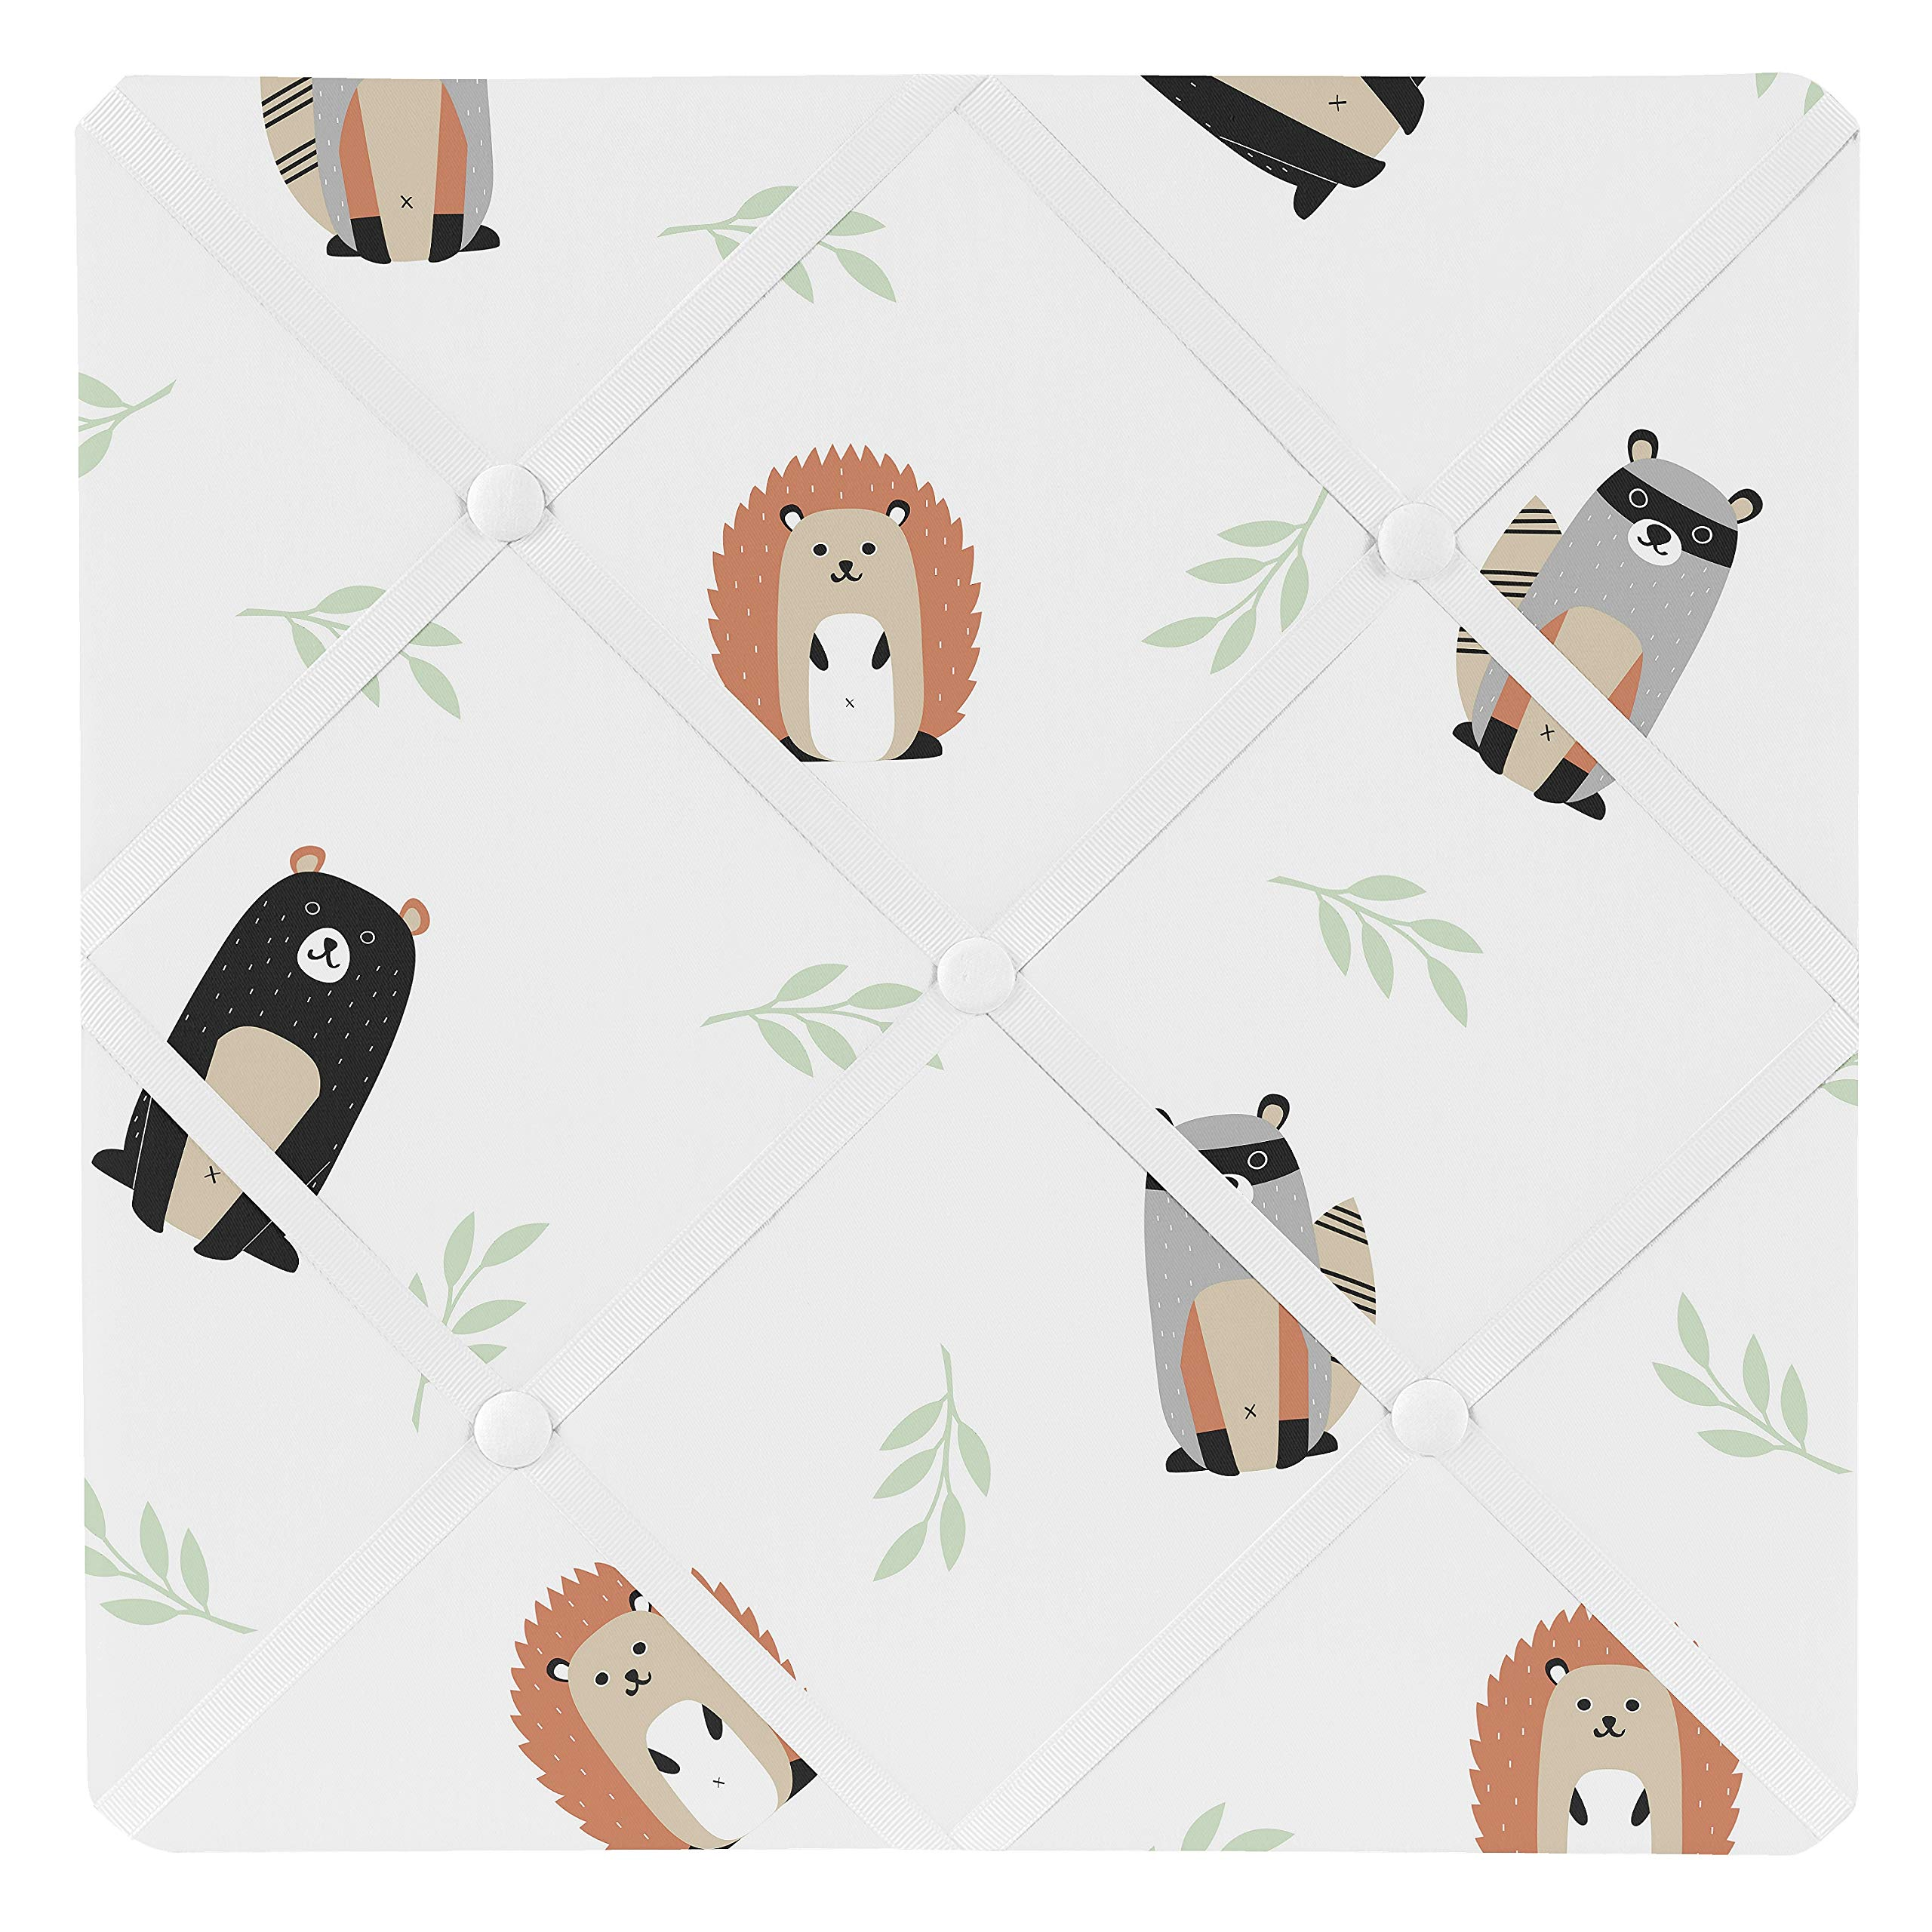 Sweet Jojo Designs Bear Raccoon Hedgehog Forest Animal Fabric Memory Memo Photo Bulletin Board for Woodland Pals Collection - Neutral Beige, Green, Black and Grey by Sweet Jojo Designs